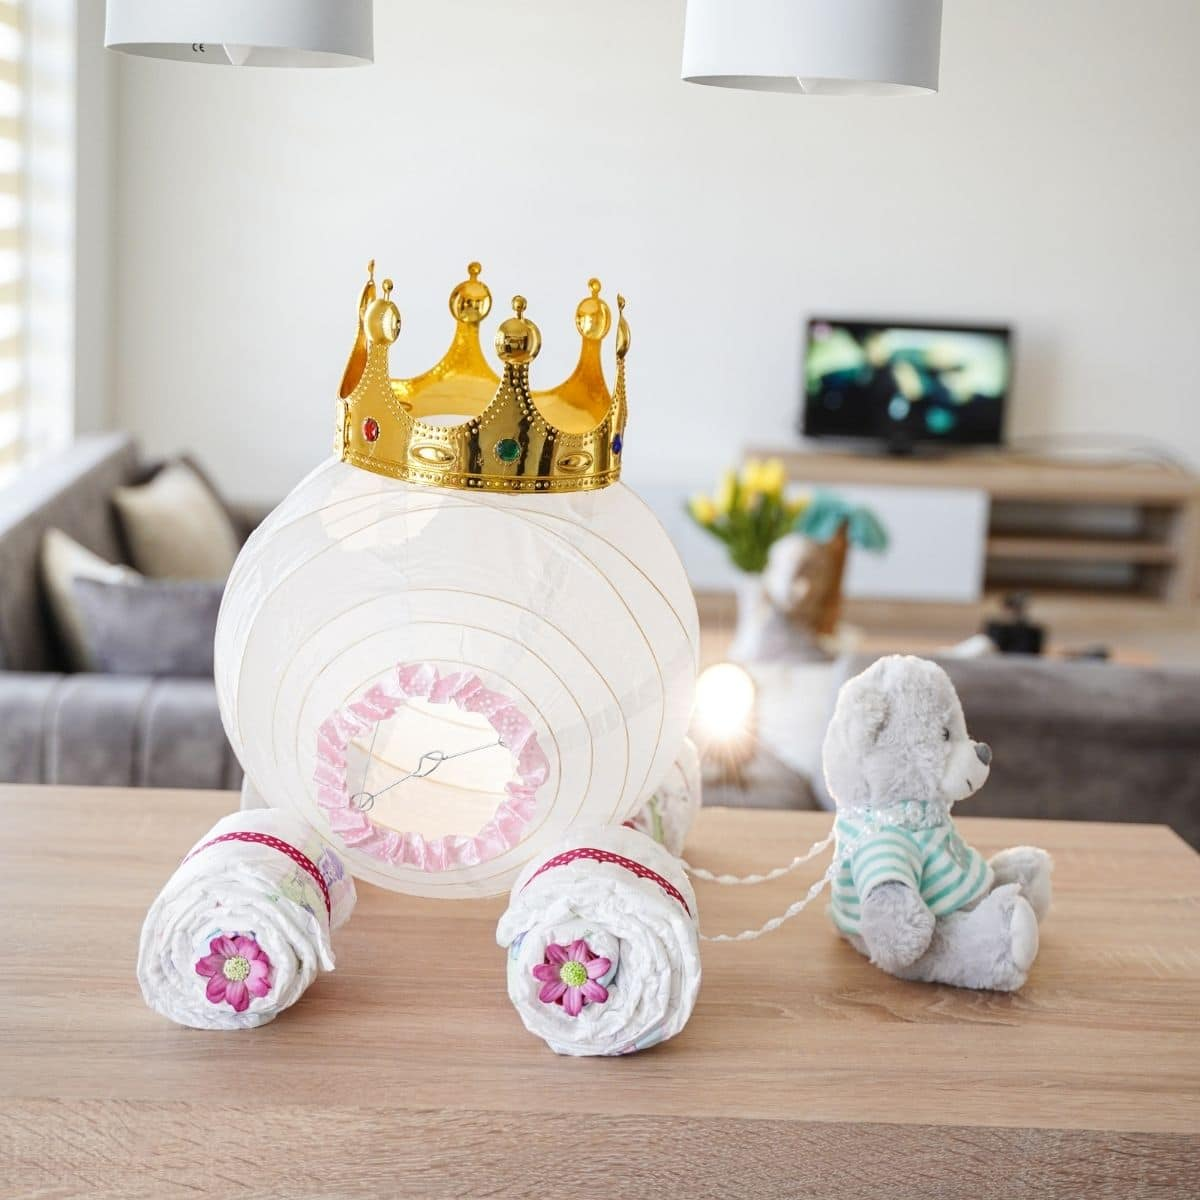 Paper lantern with crown on top on table